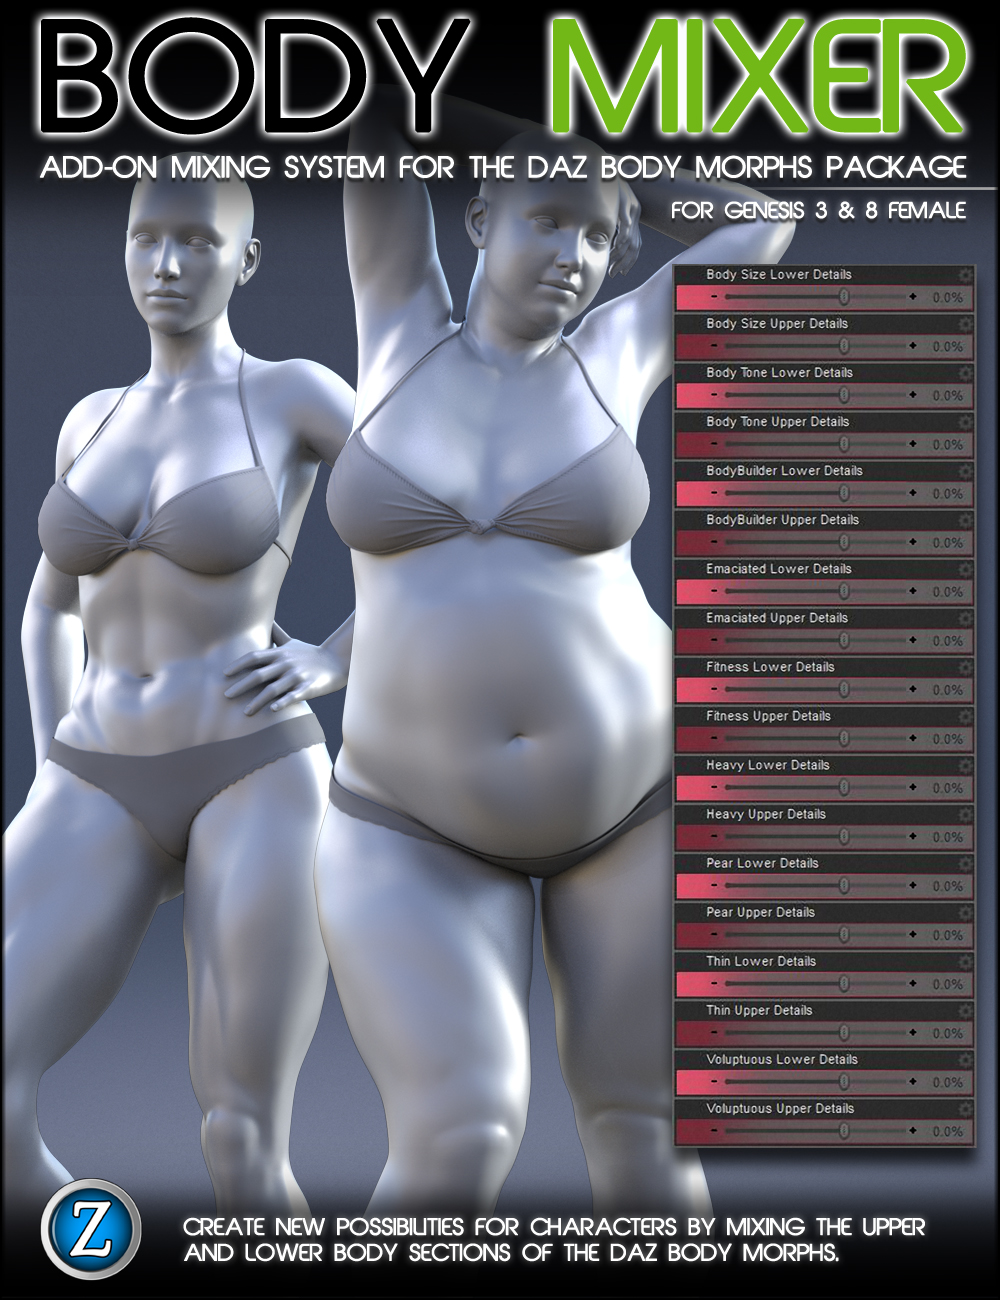 Body Mixer for Genesis 3 and 8 Female by: Zev0, 3D Models by Daz 3D